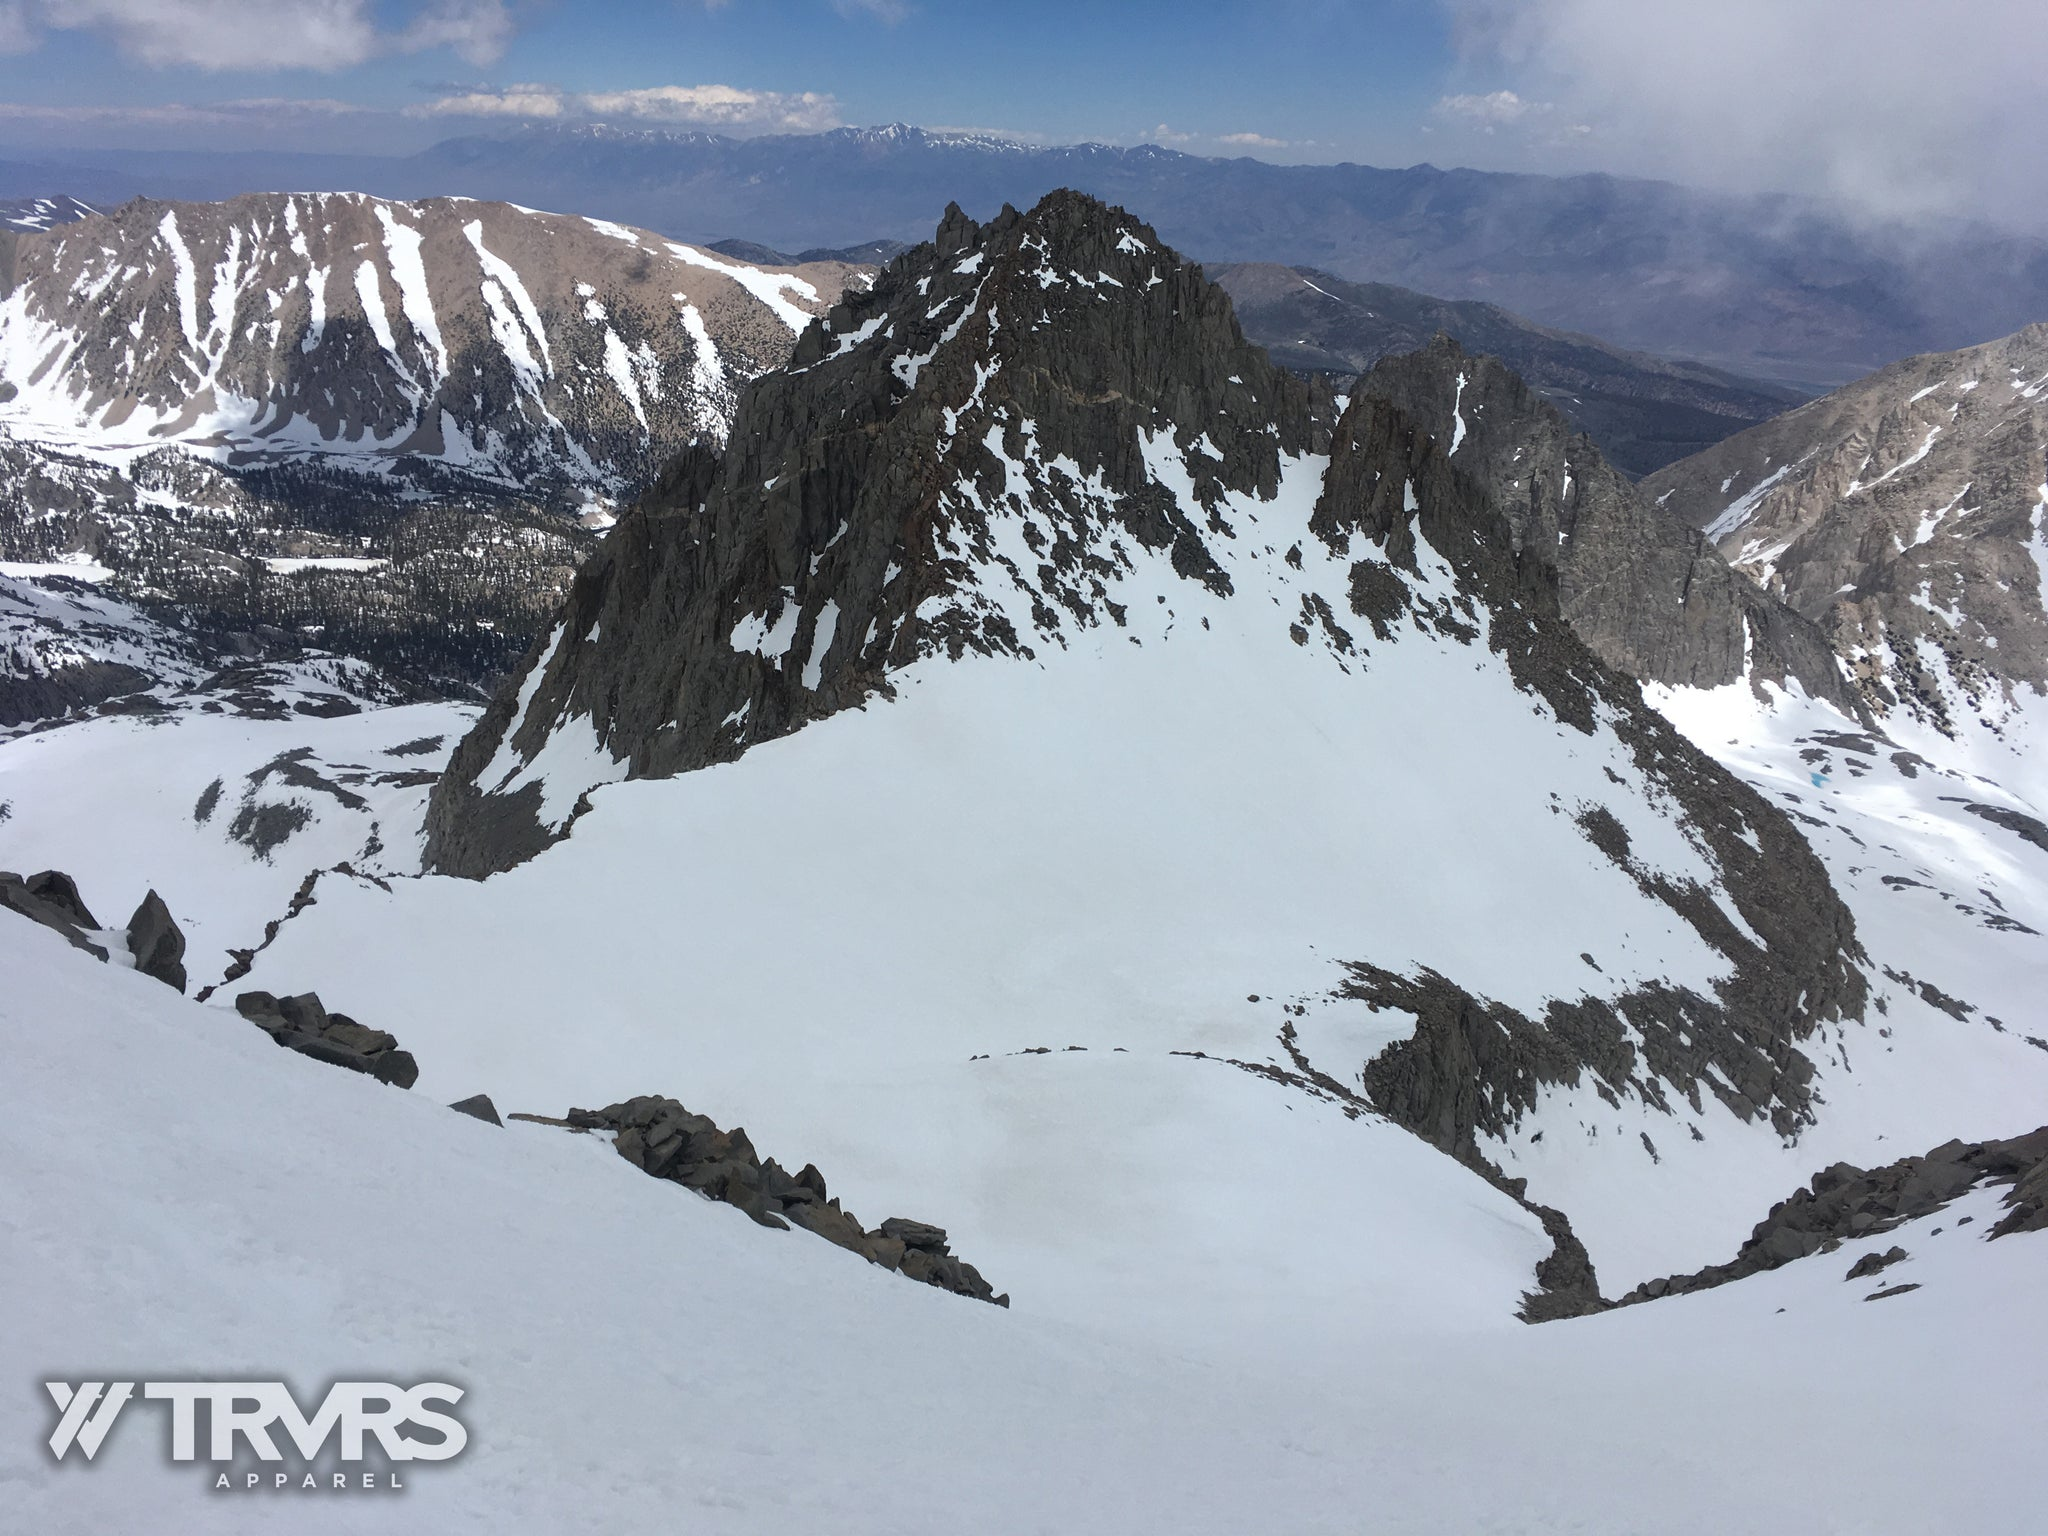 View from Mount Sill's North Couloir - North Fork, Mount Gayley, Contact Pass | TRVRS APPAREL